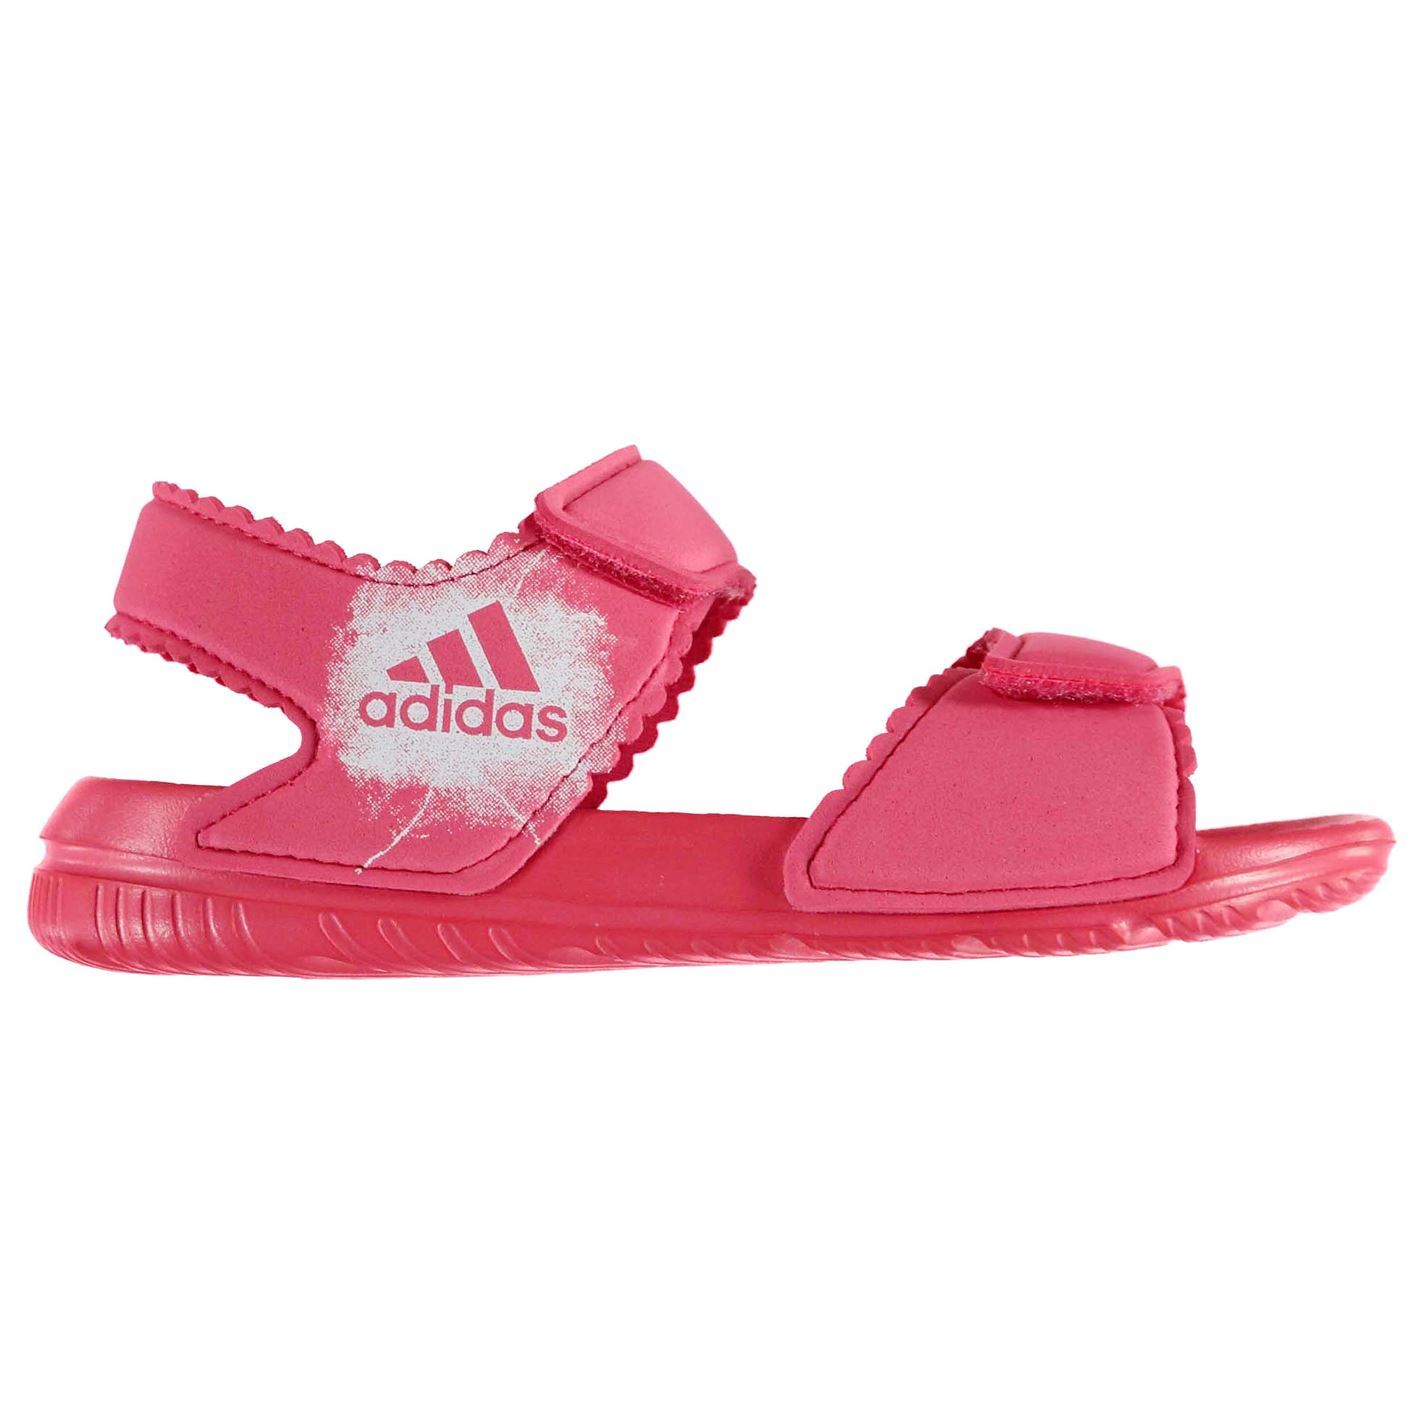 7298d7b8ecf7 adidas Kids Alta Swim Infant Girl Pool Sandals Shoes Beach Summer Hook and  Loop